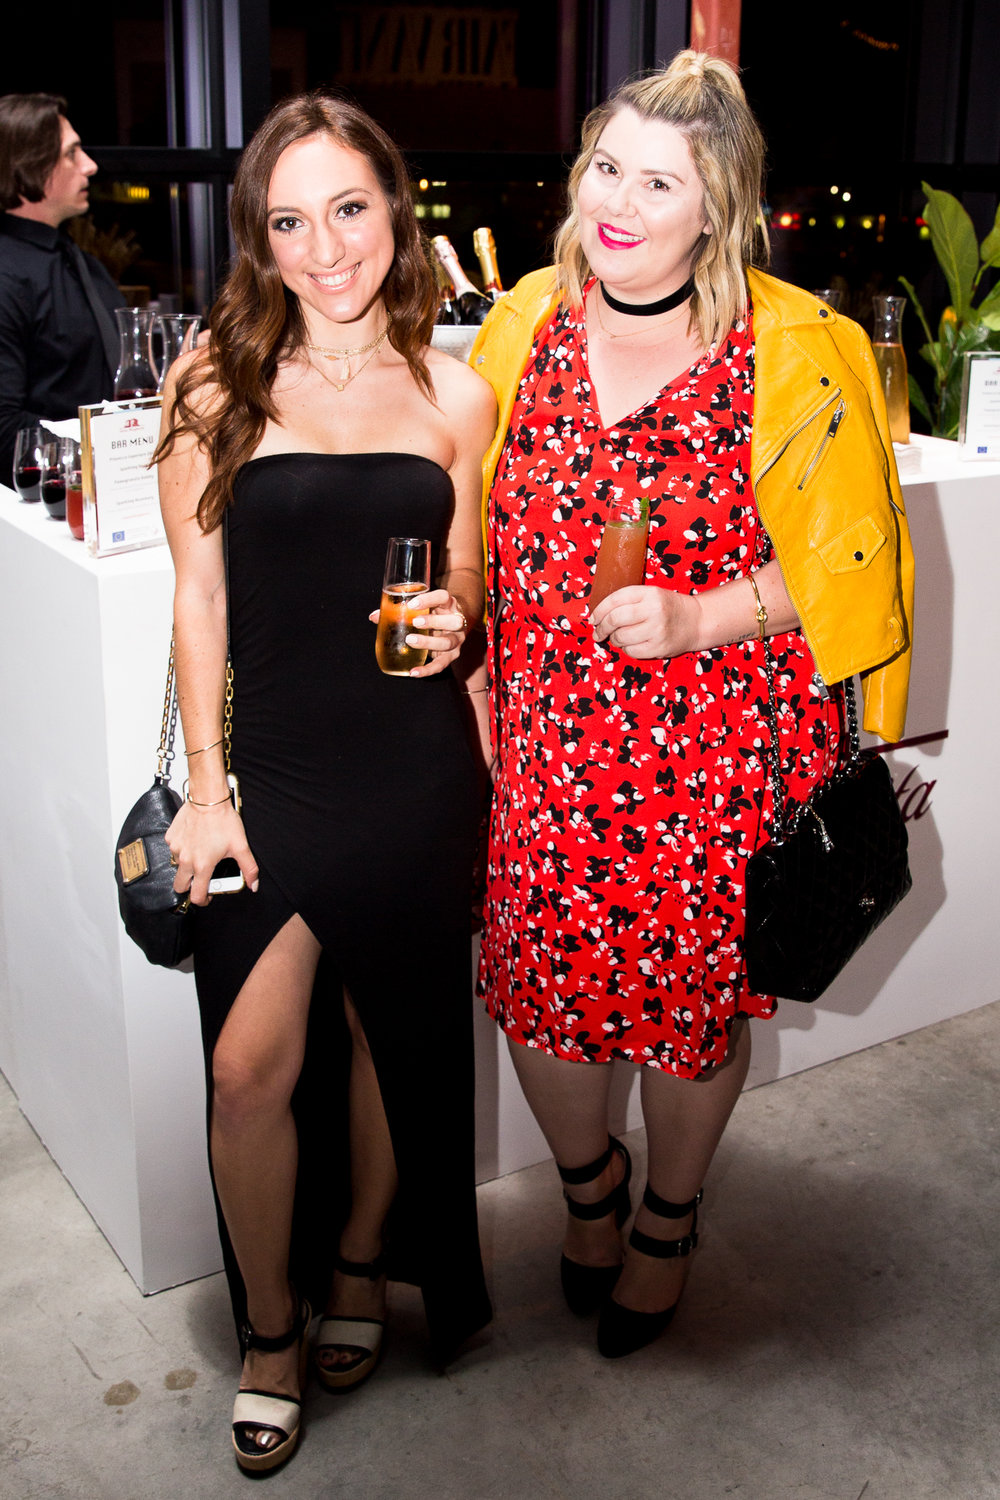 Brielle Galekovic of The Gilded Bellini and Samira of Style Me Samira at Vanity Fair Social Club Emmy's Edition